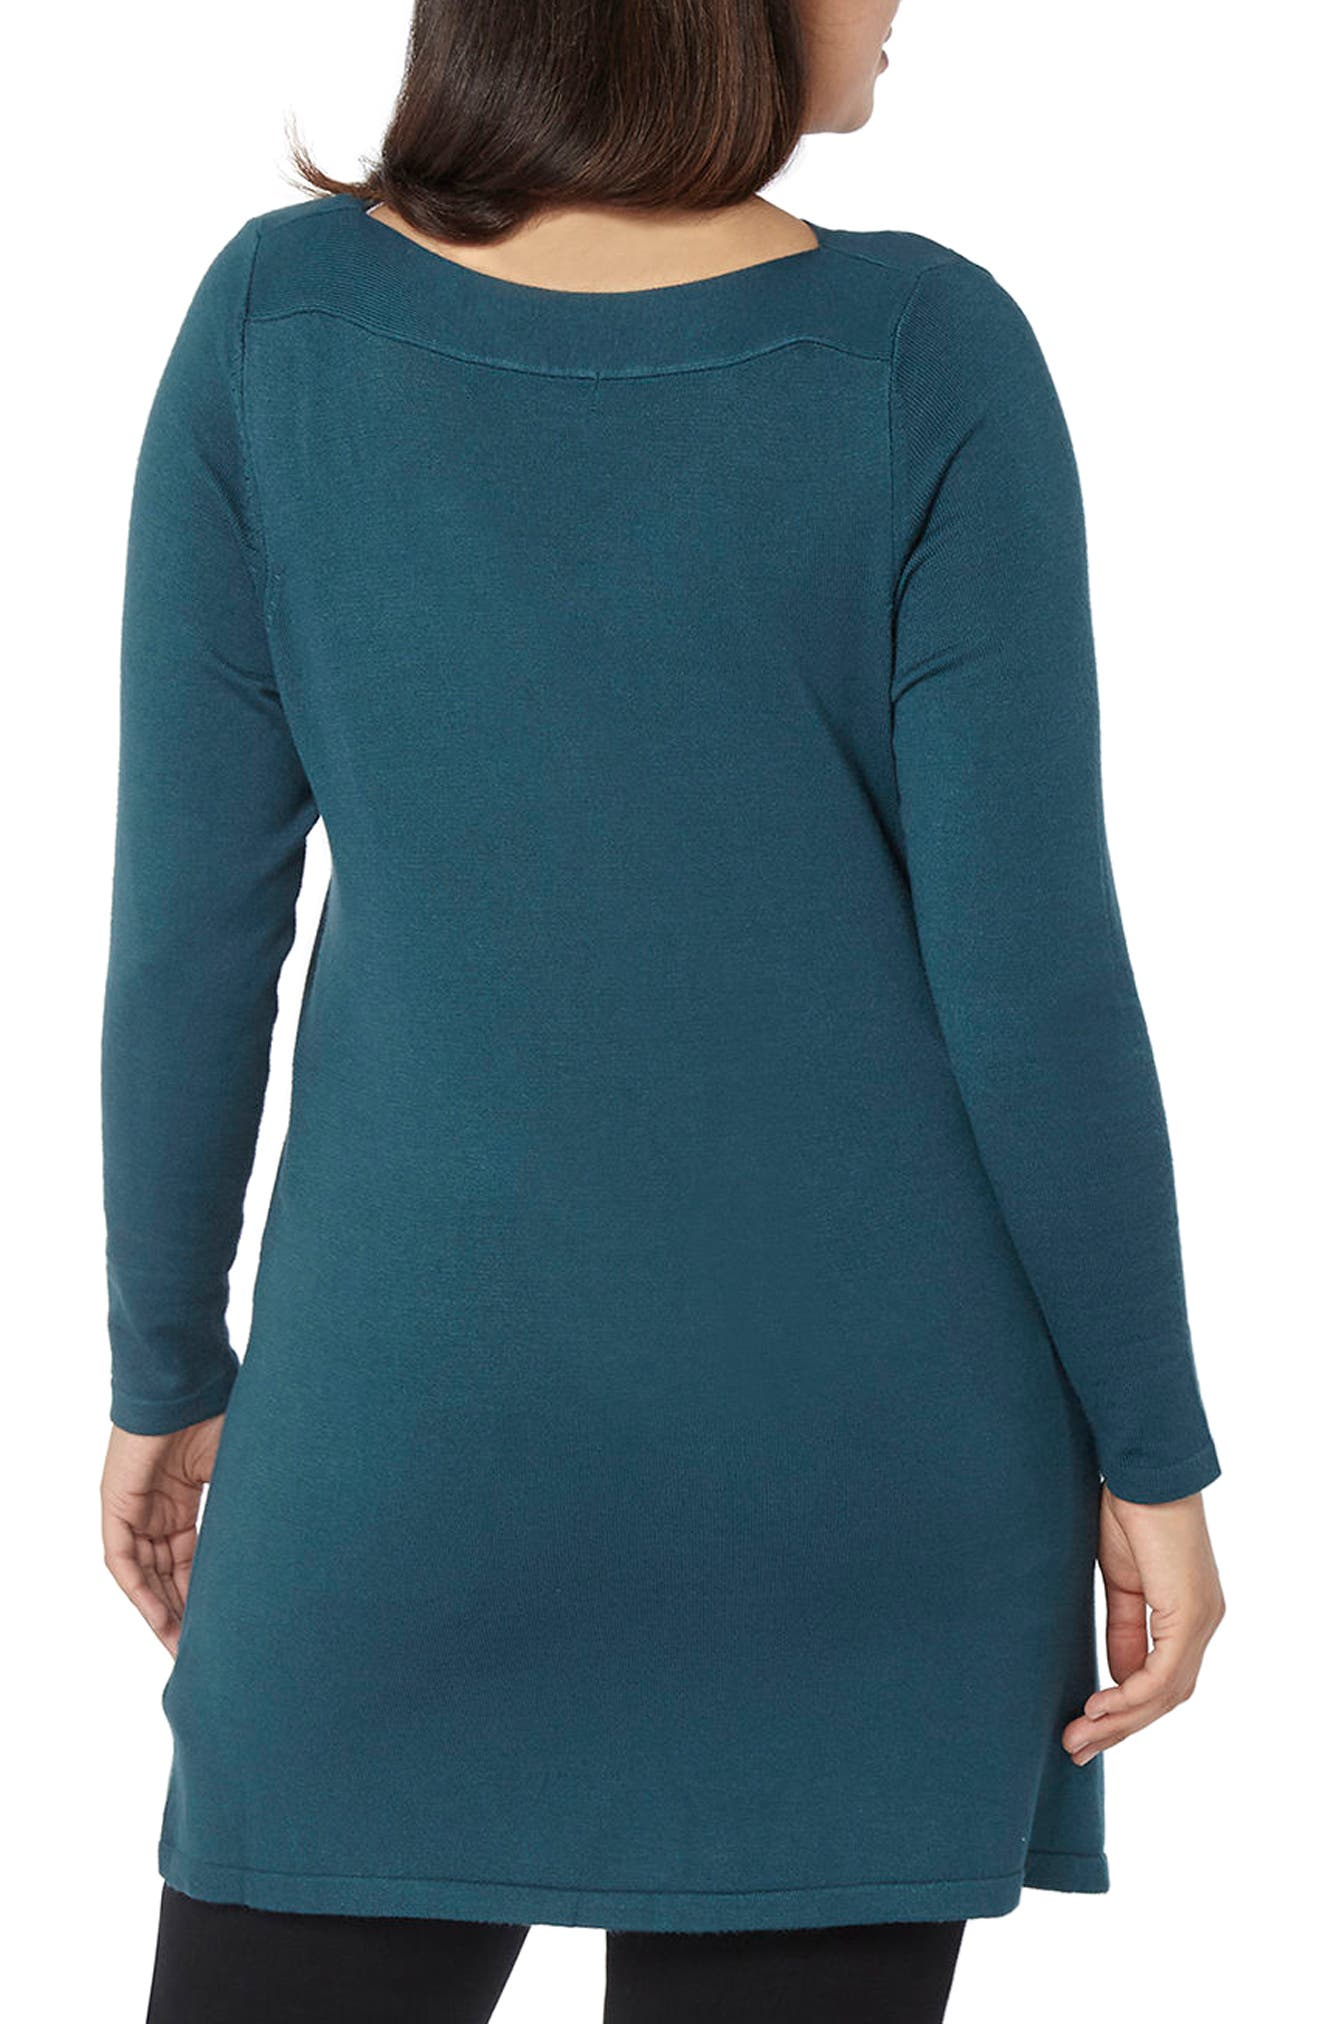 Alternate Image 3  - Evans Front Pocket Textured Tunic Sweater (Plus Size)